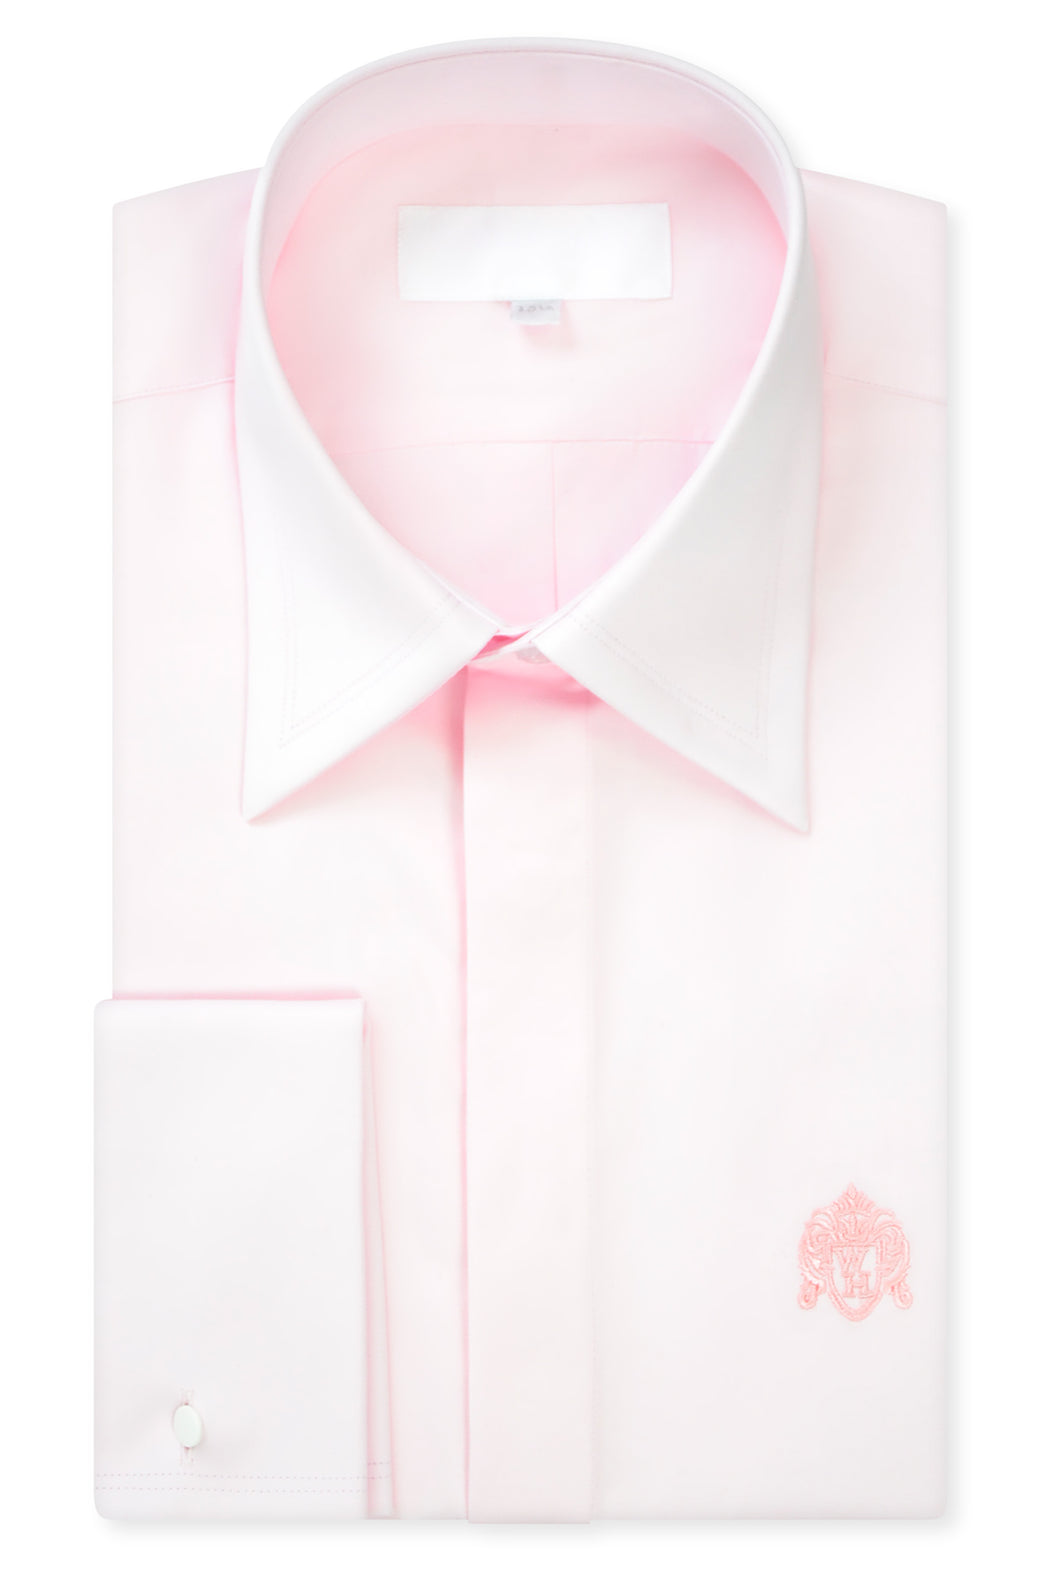 Classic Light Pink Forward Point Collar Shirt